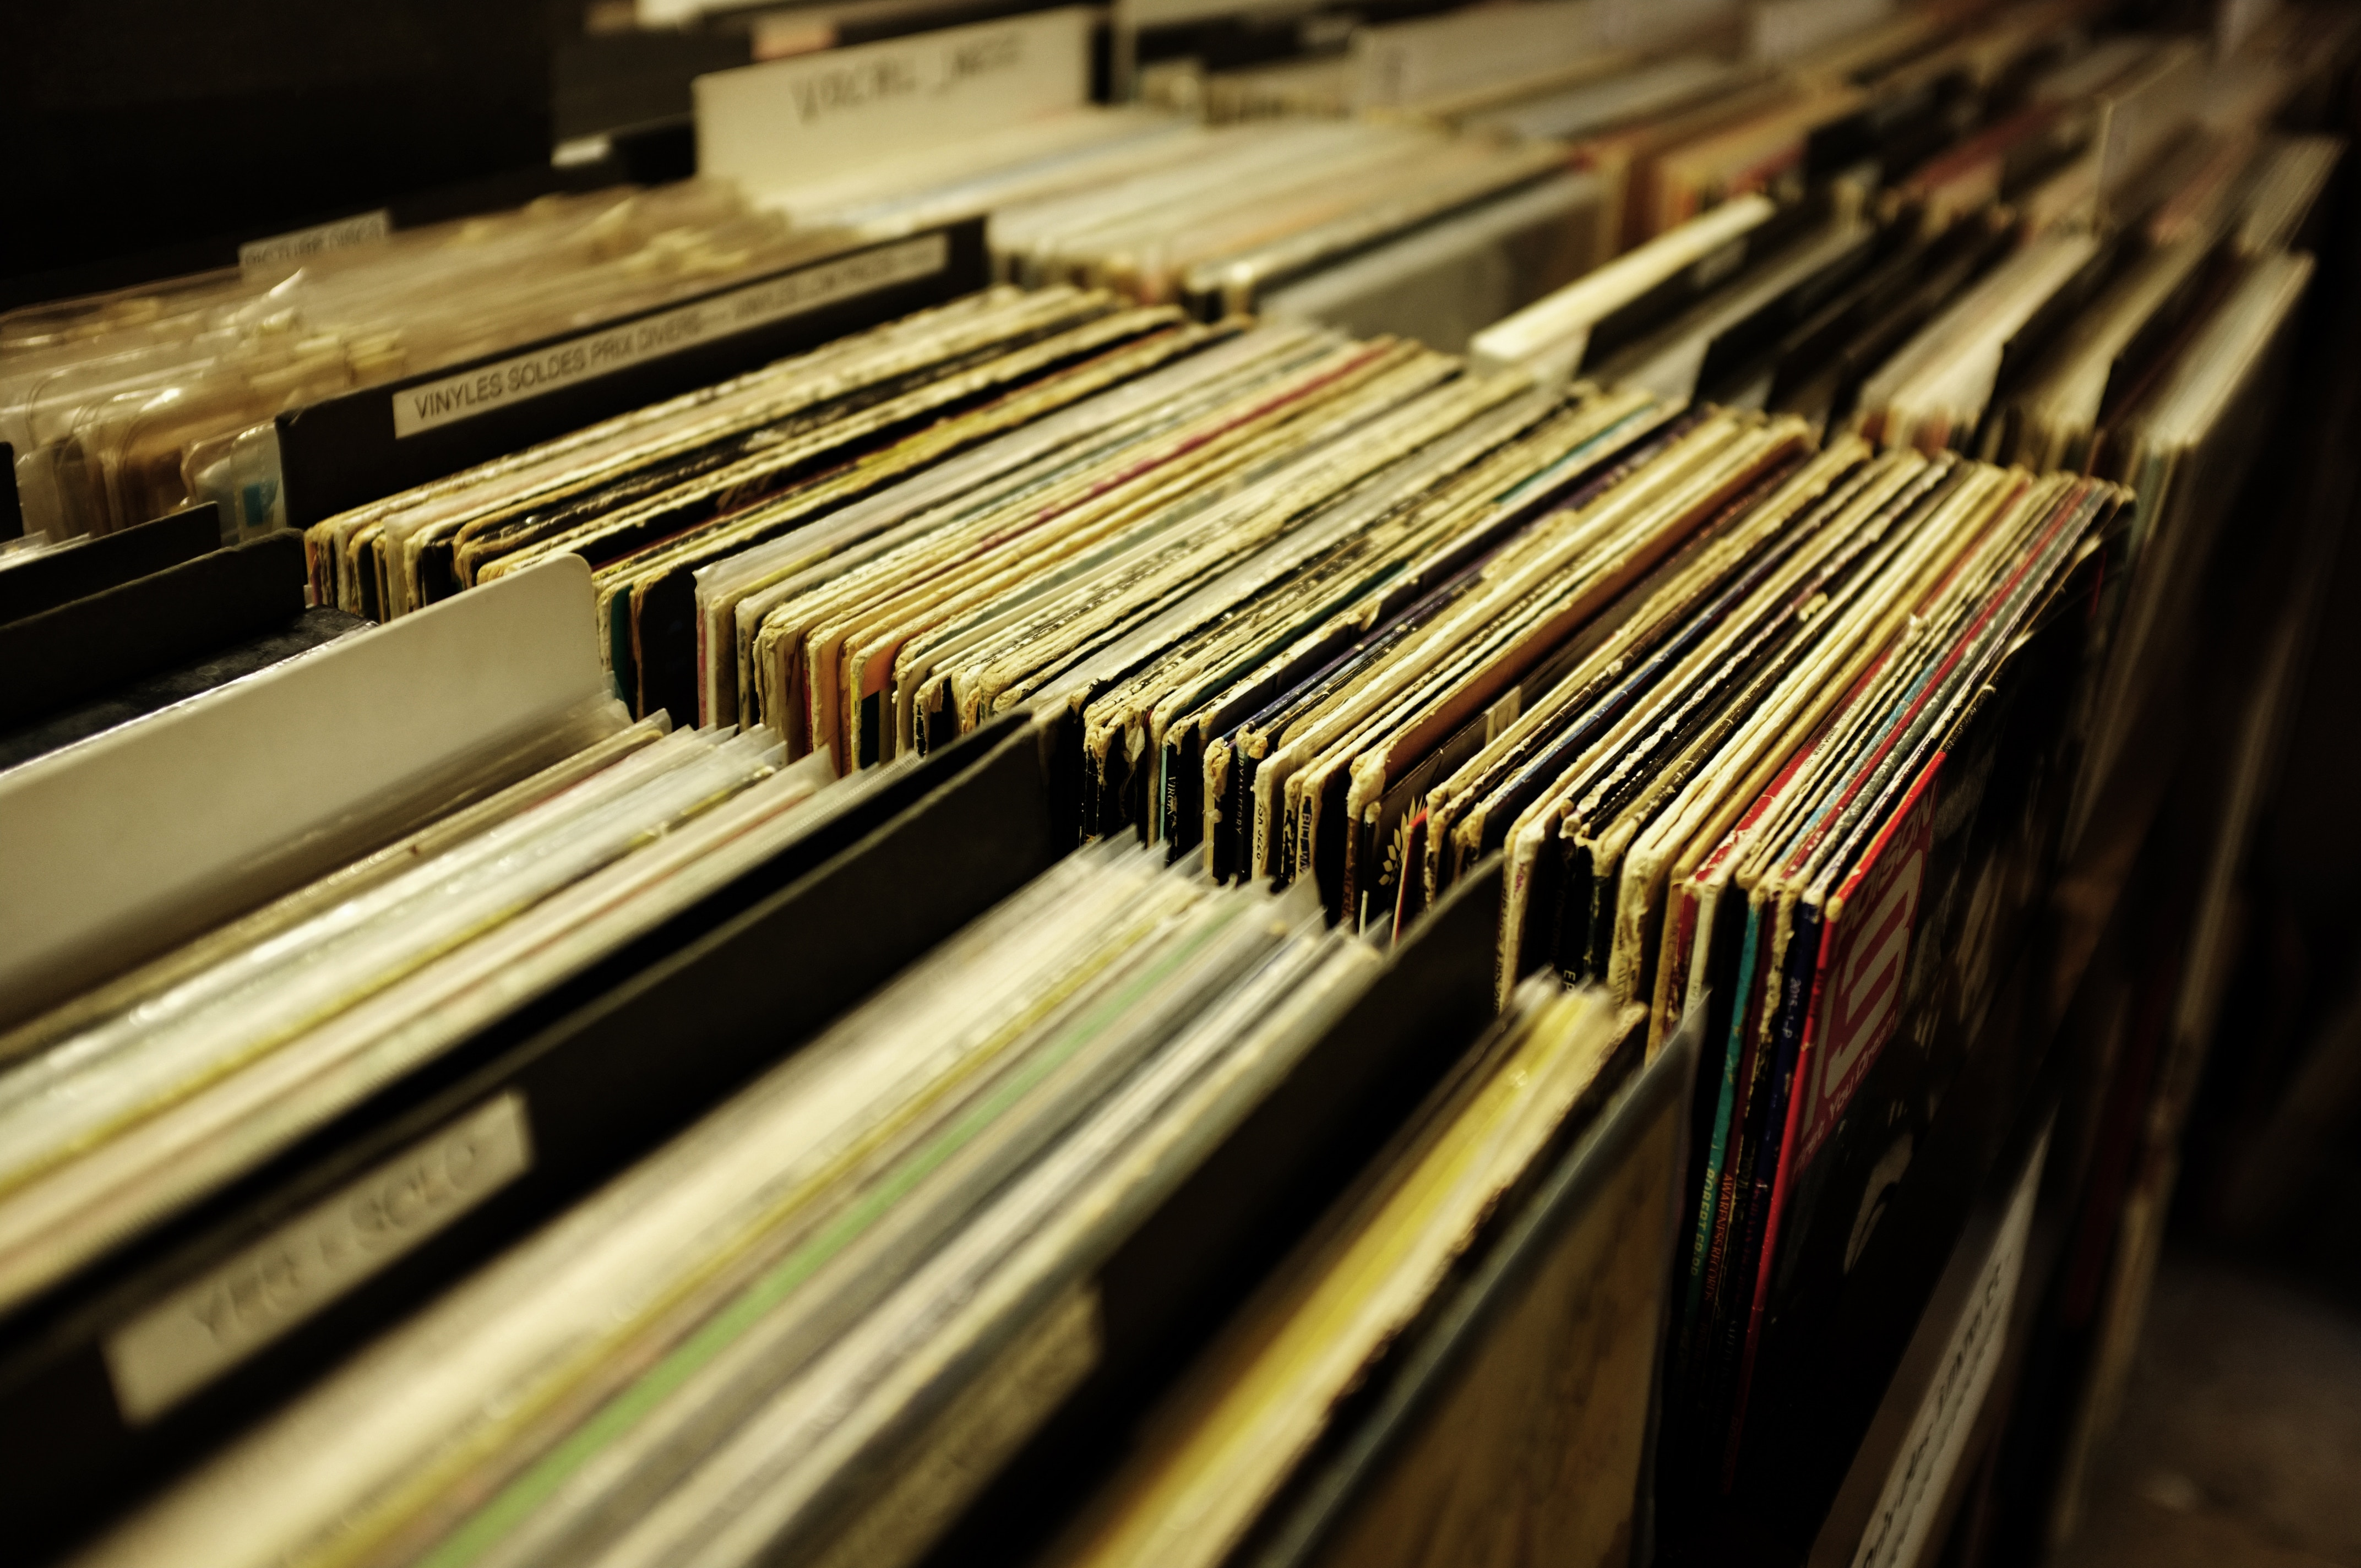 old record albums in bins from unsplash.com